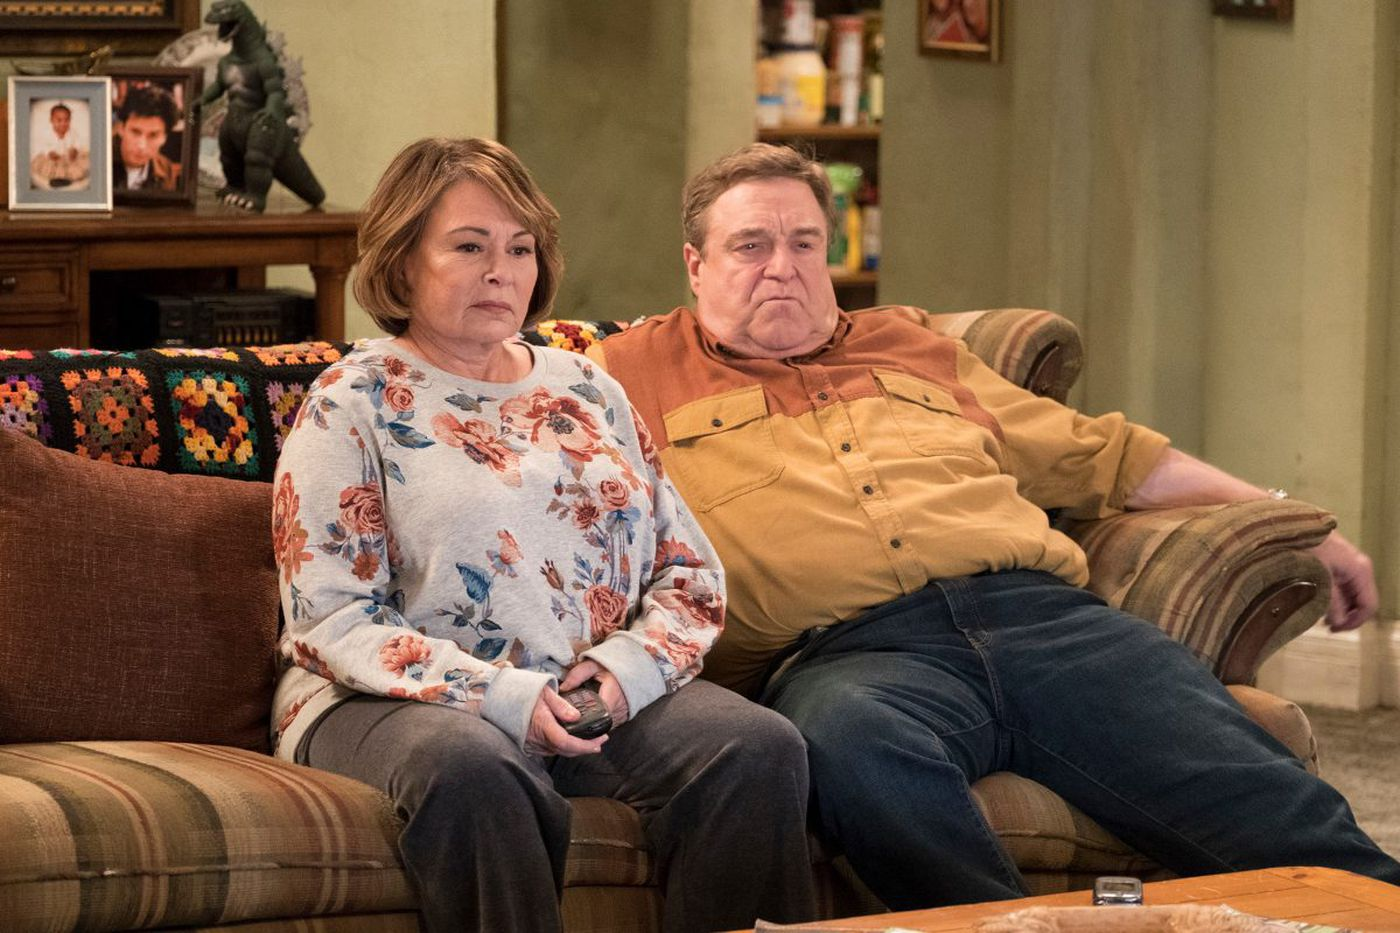 The new Roseanne show still represents the working class | Dom Giordano